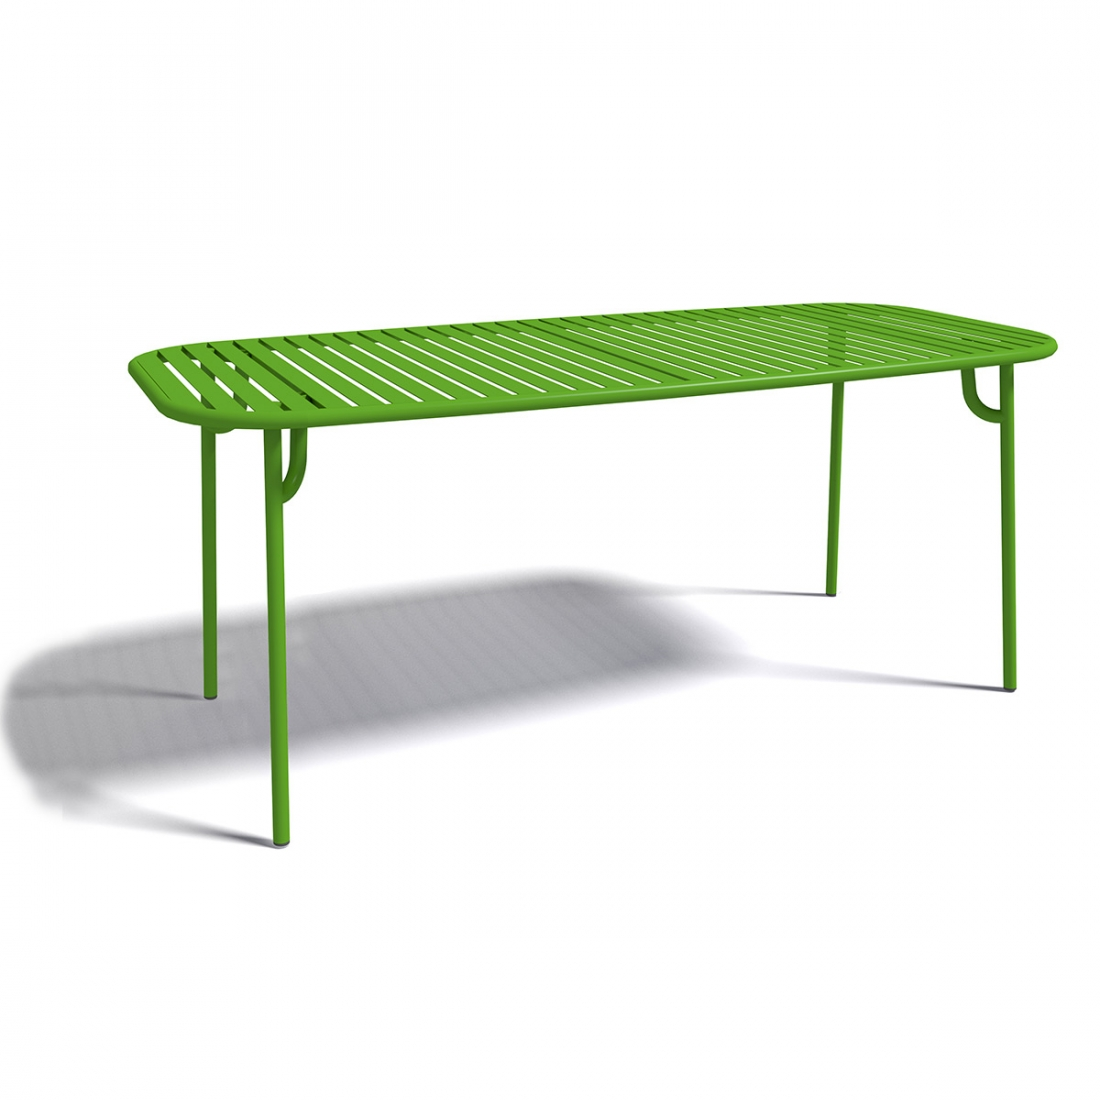 Table de repas d ext rieur design week end par oxyo for Table de repas design